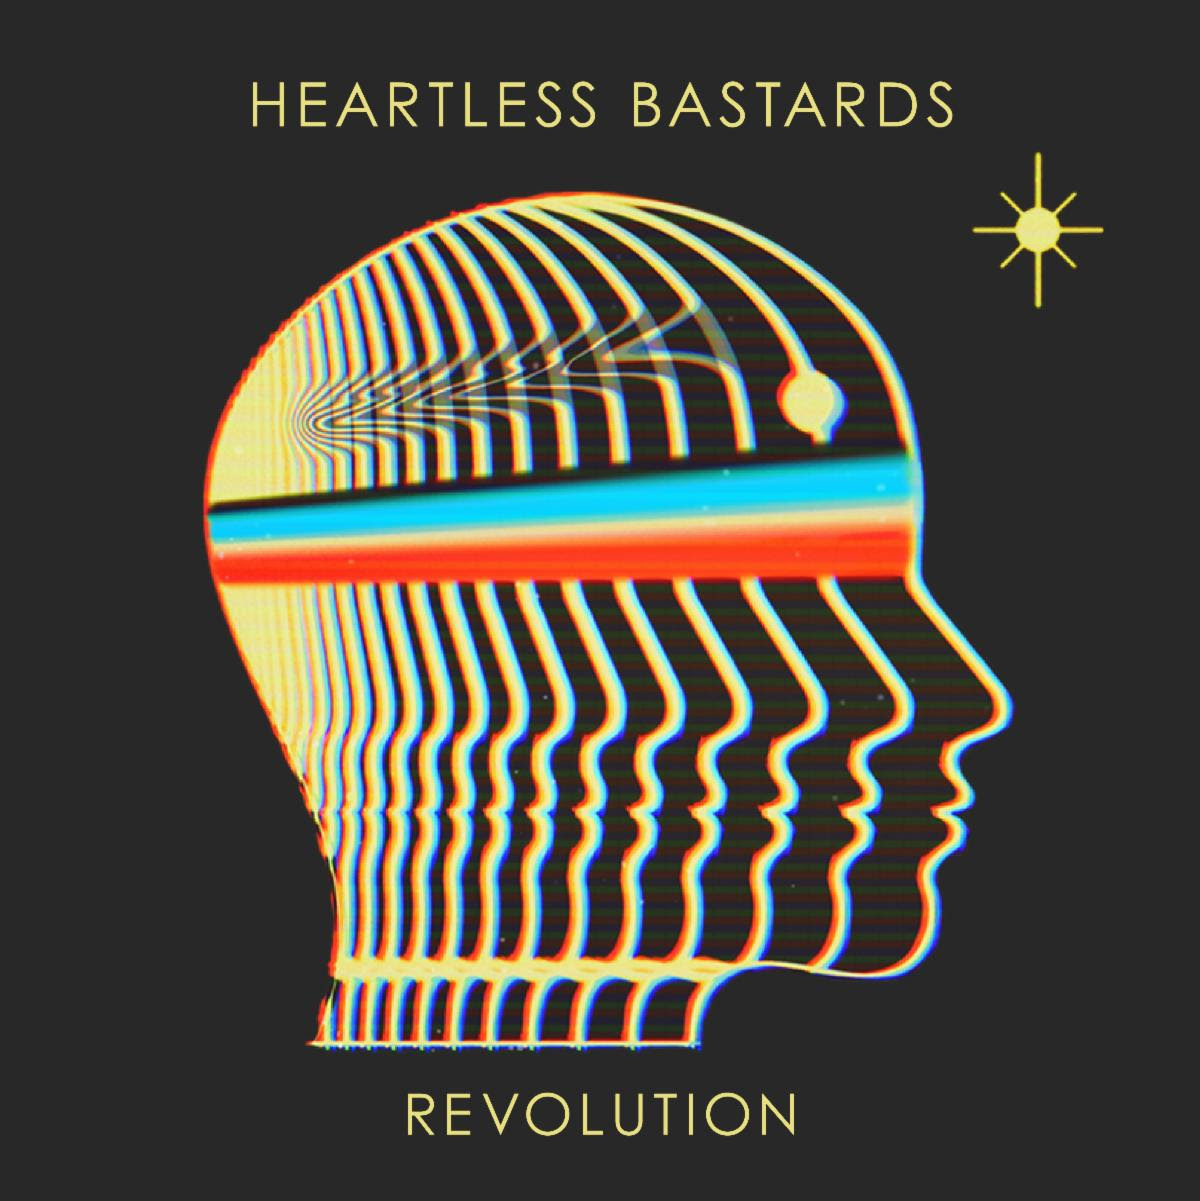 heartless bastards revolution song artwork Heartless Bastards Start a Revolution on First Single in Five Years: Stream